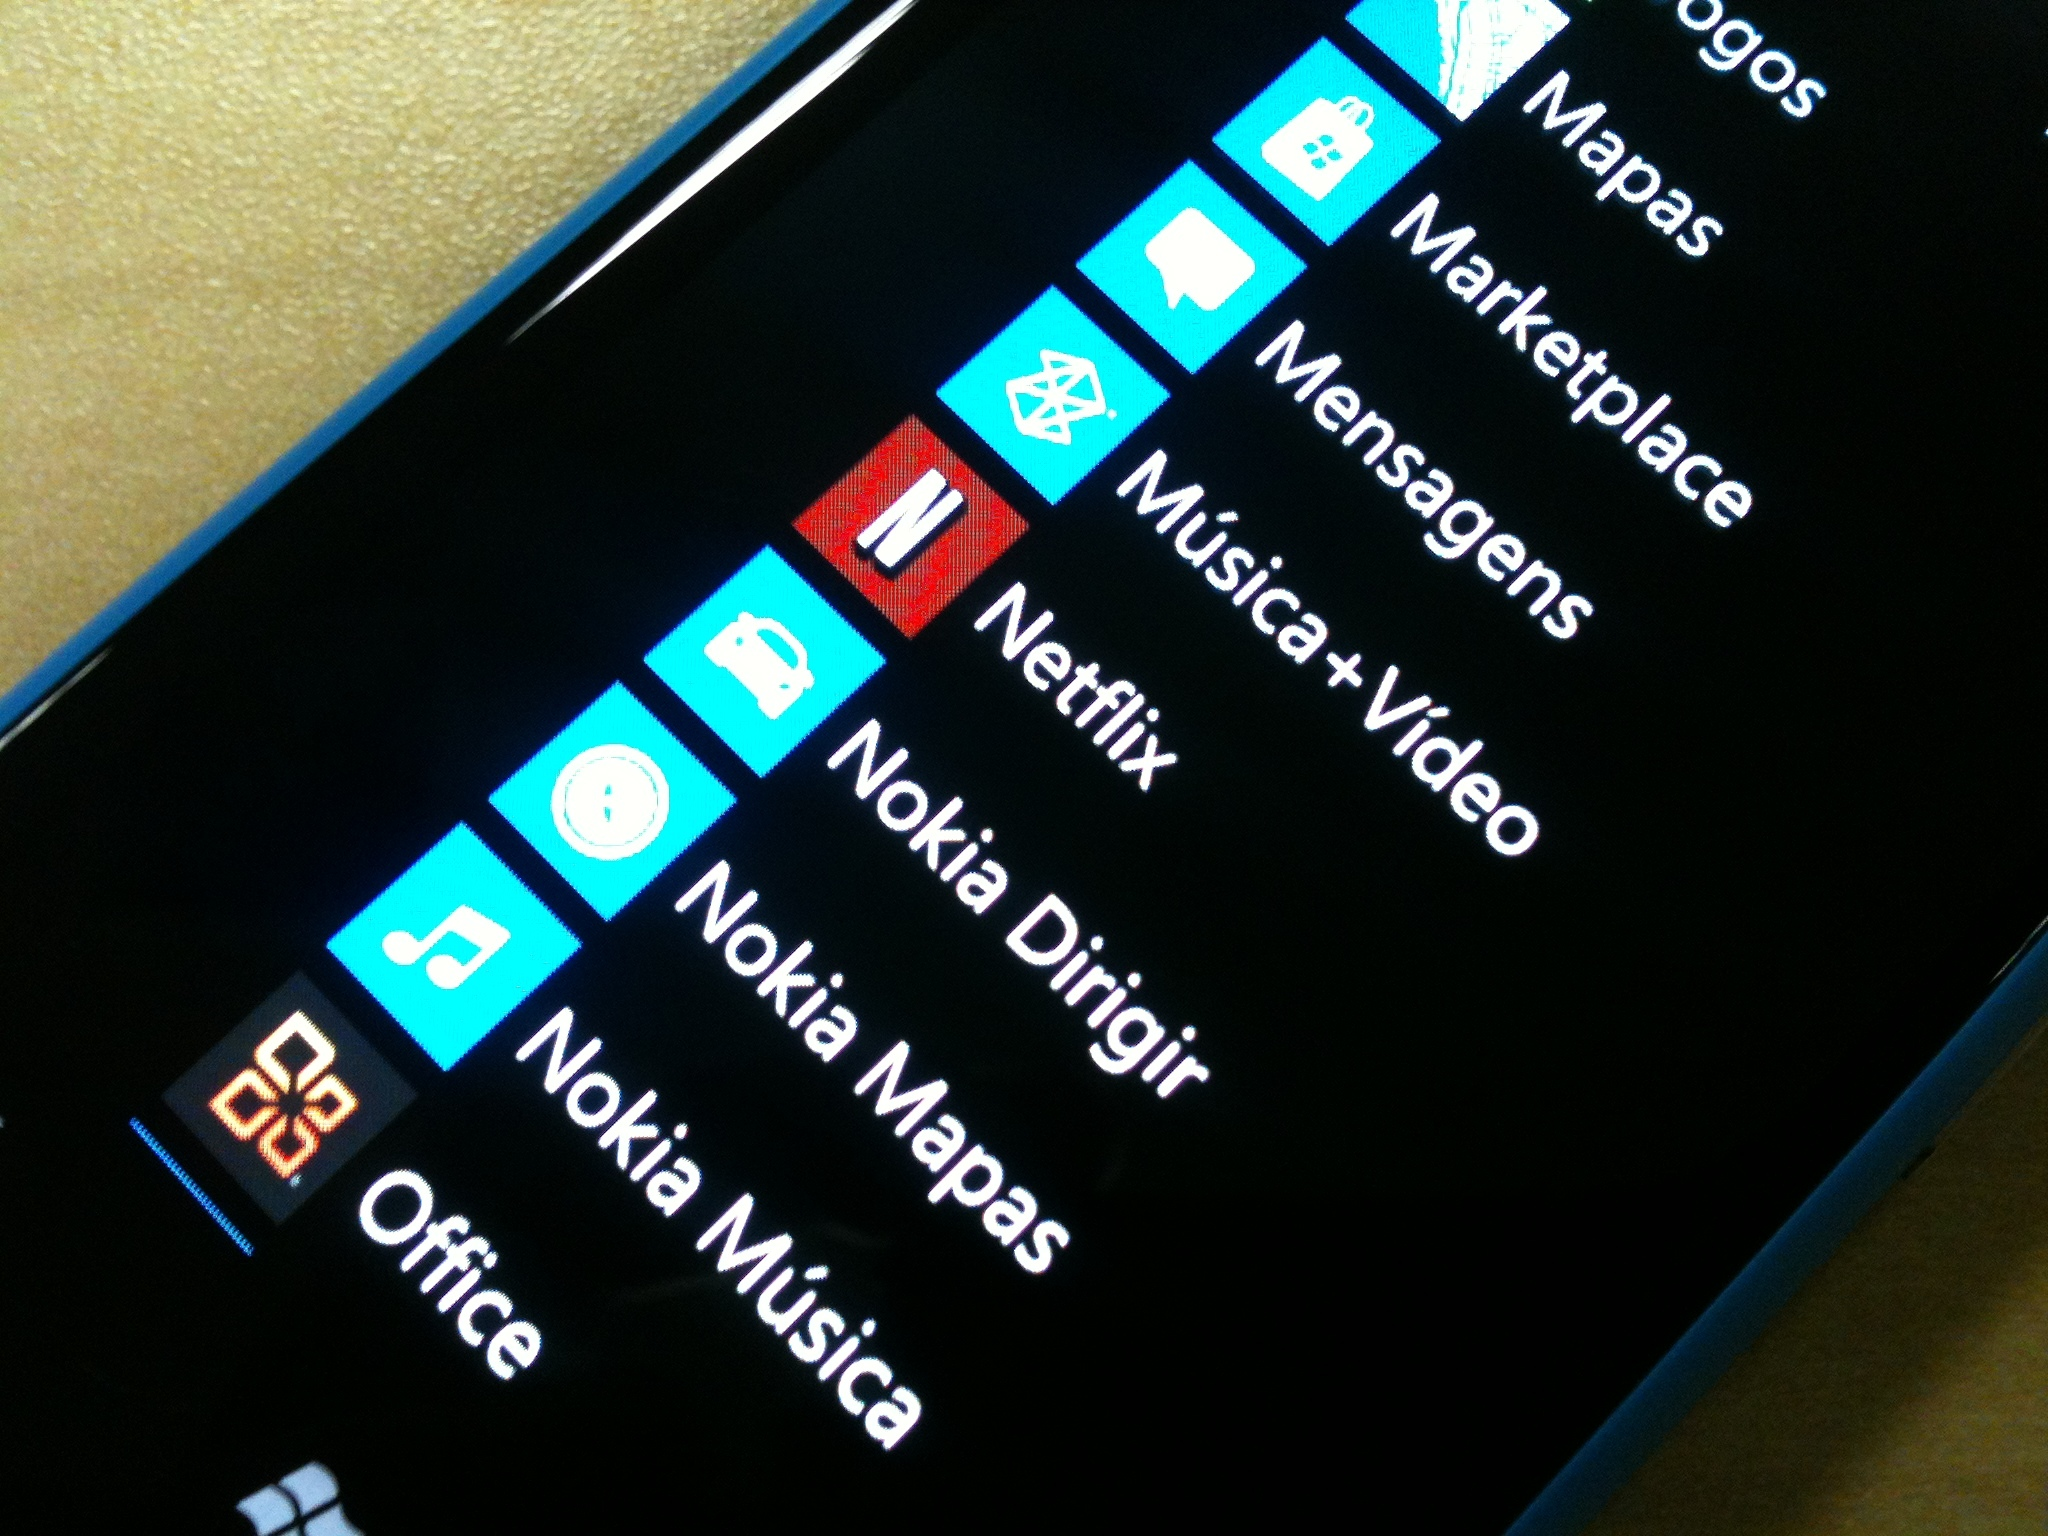 netflix and chill even more as official windows phone app gets updated